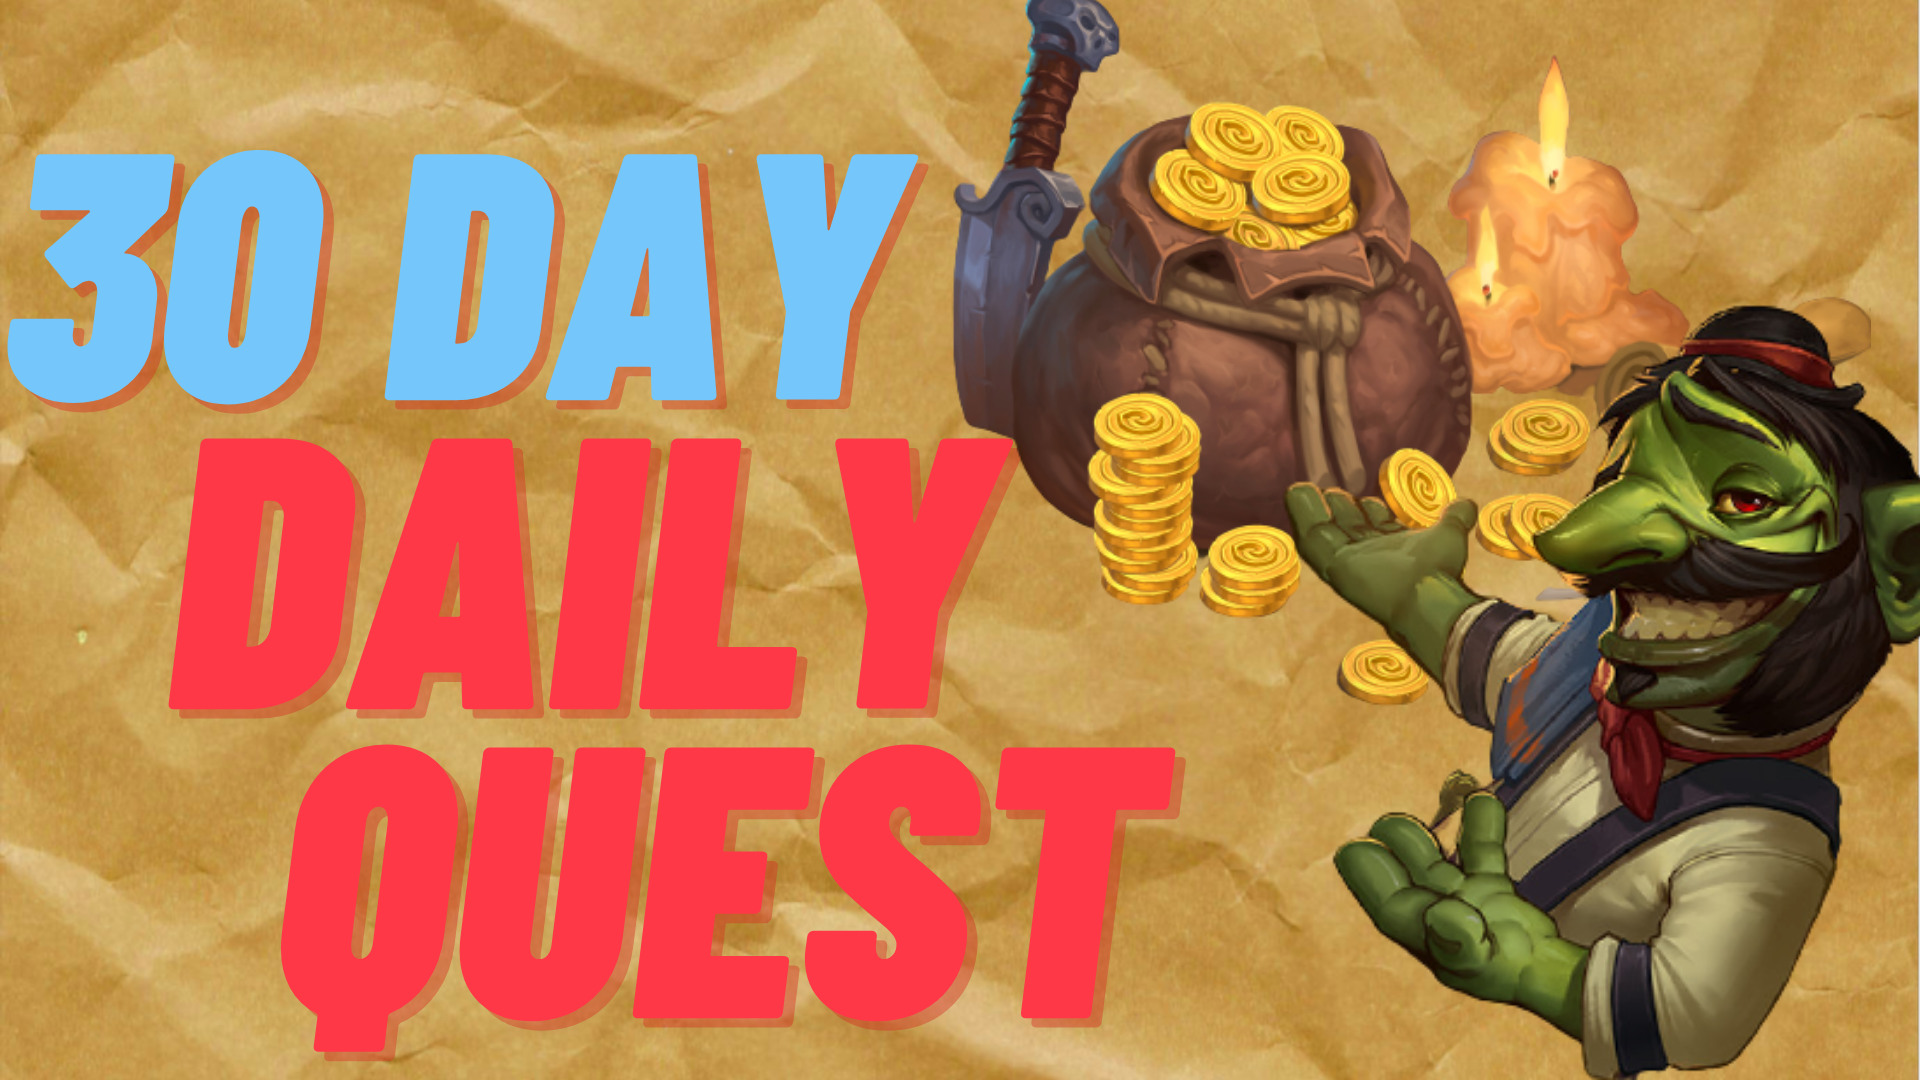 30-Day Daily Quests GBD - e2p.com